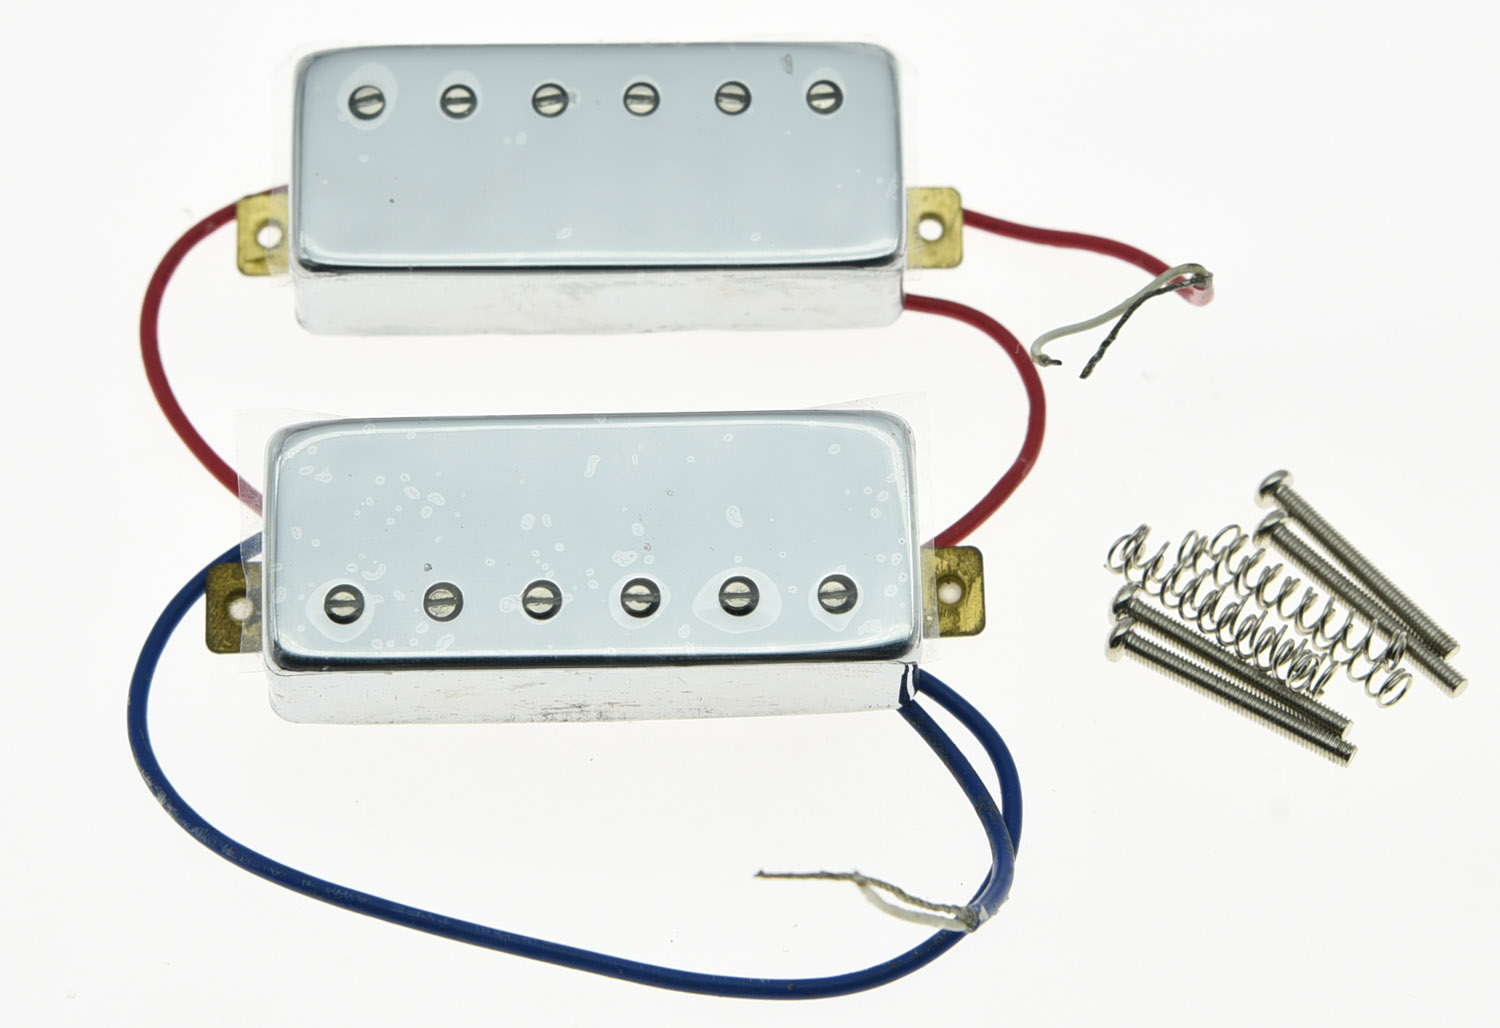 где купить KAISH Chrome LP Guitar Mini Humbucker Neck Bridge Pickup Set 6.5K Pickups for LP по лучшей цене